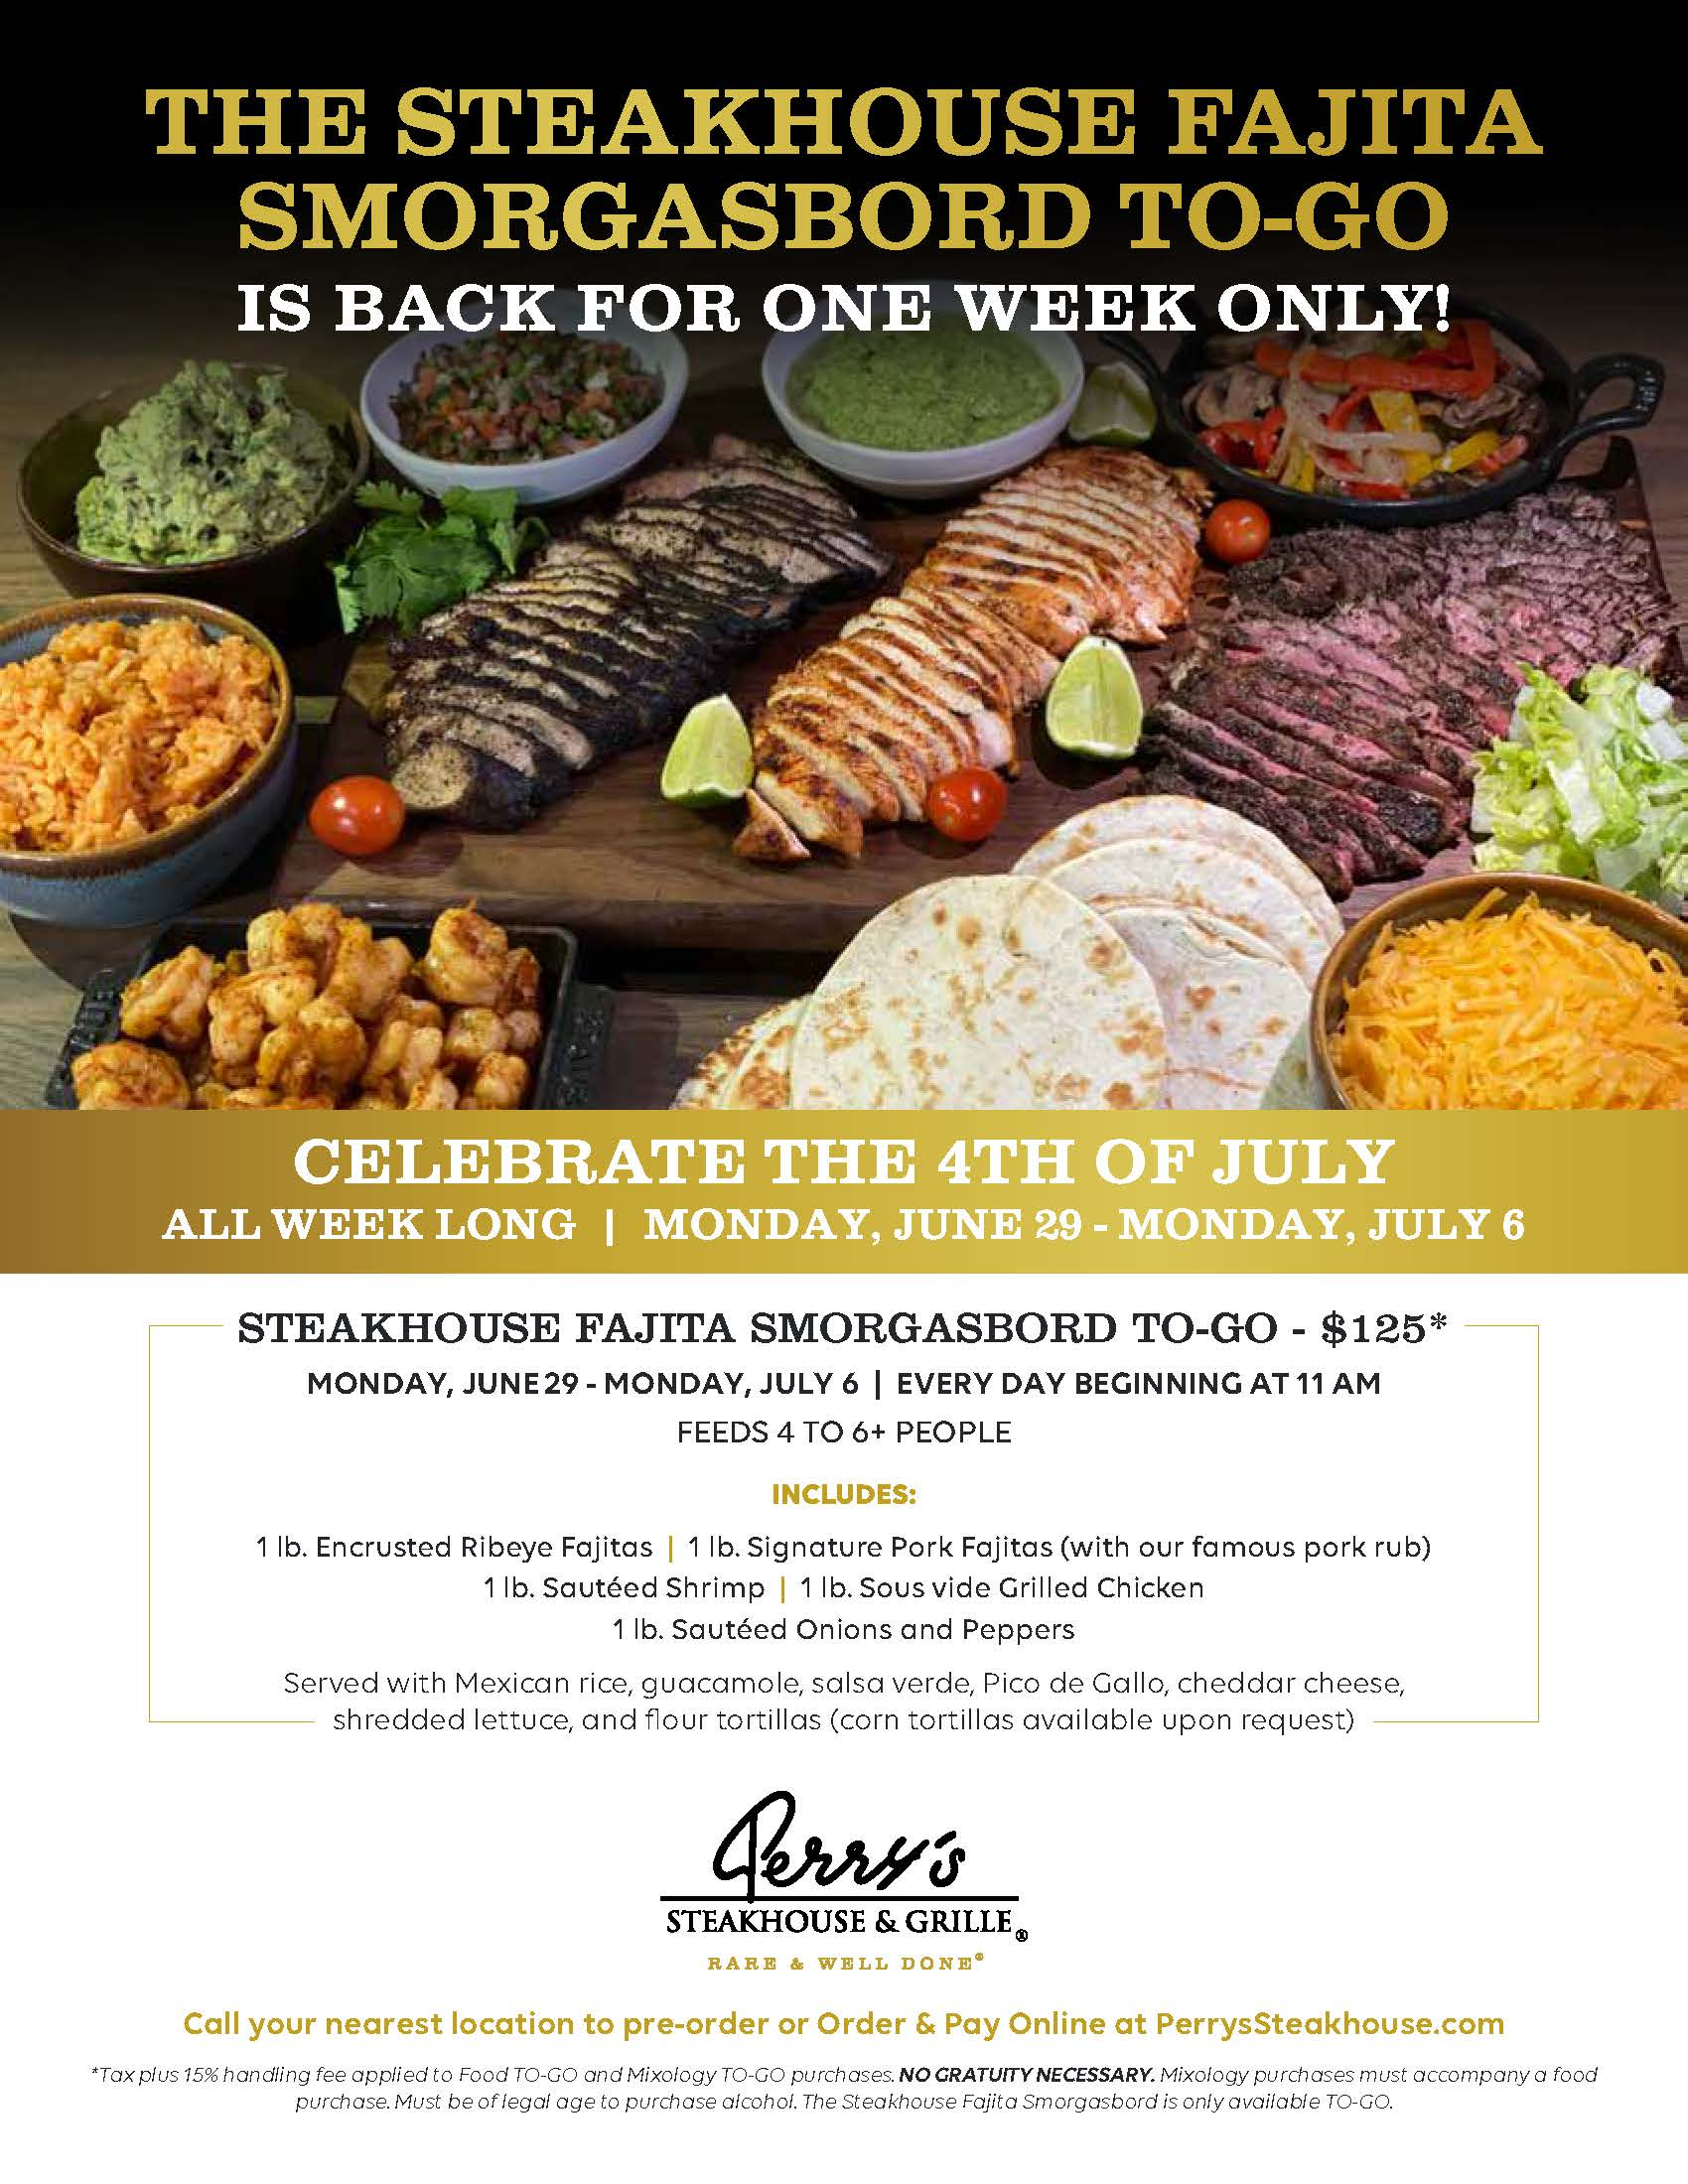 4th of July Fajita Smorgasboard from Perry's Steakhouse & Grille